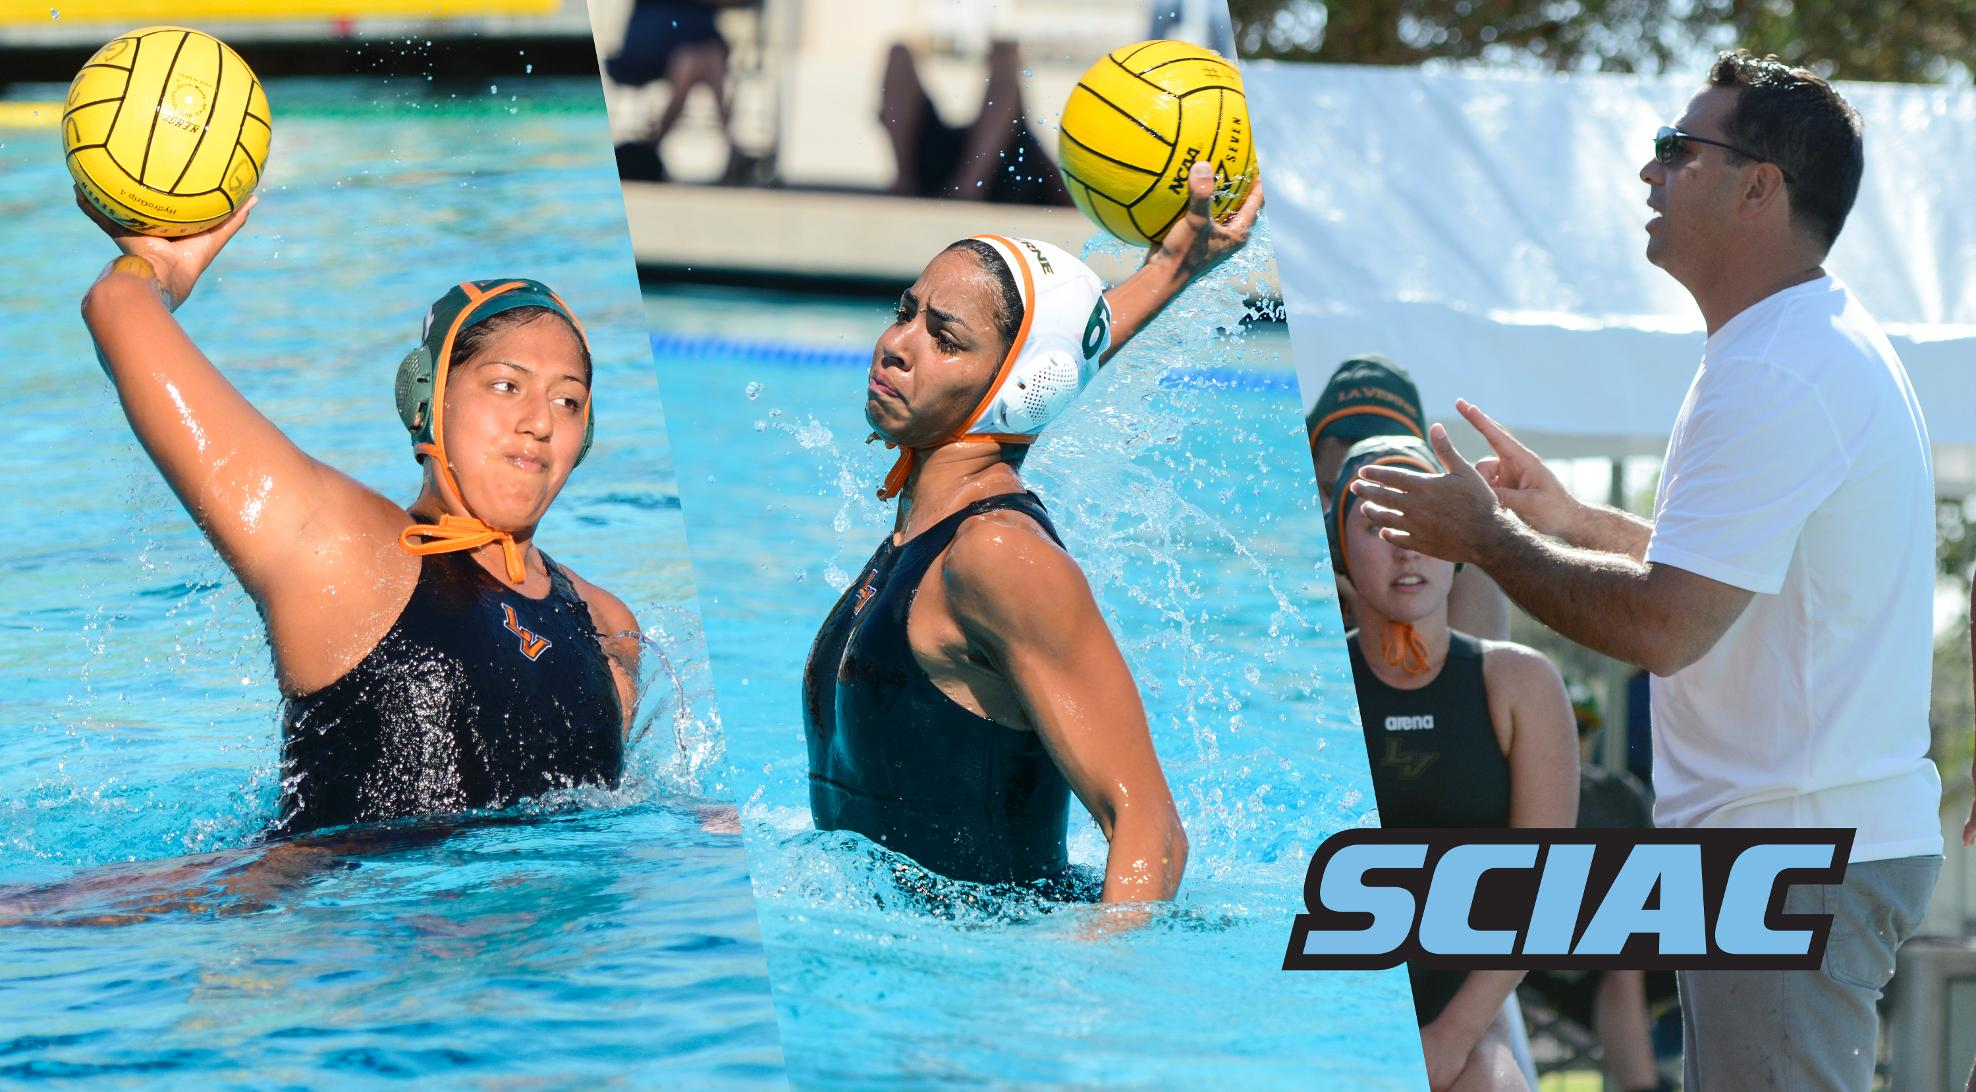 Garcia, Rosero named First Team All-SCIAC; Rodriguez Coach of the Year